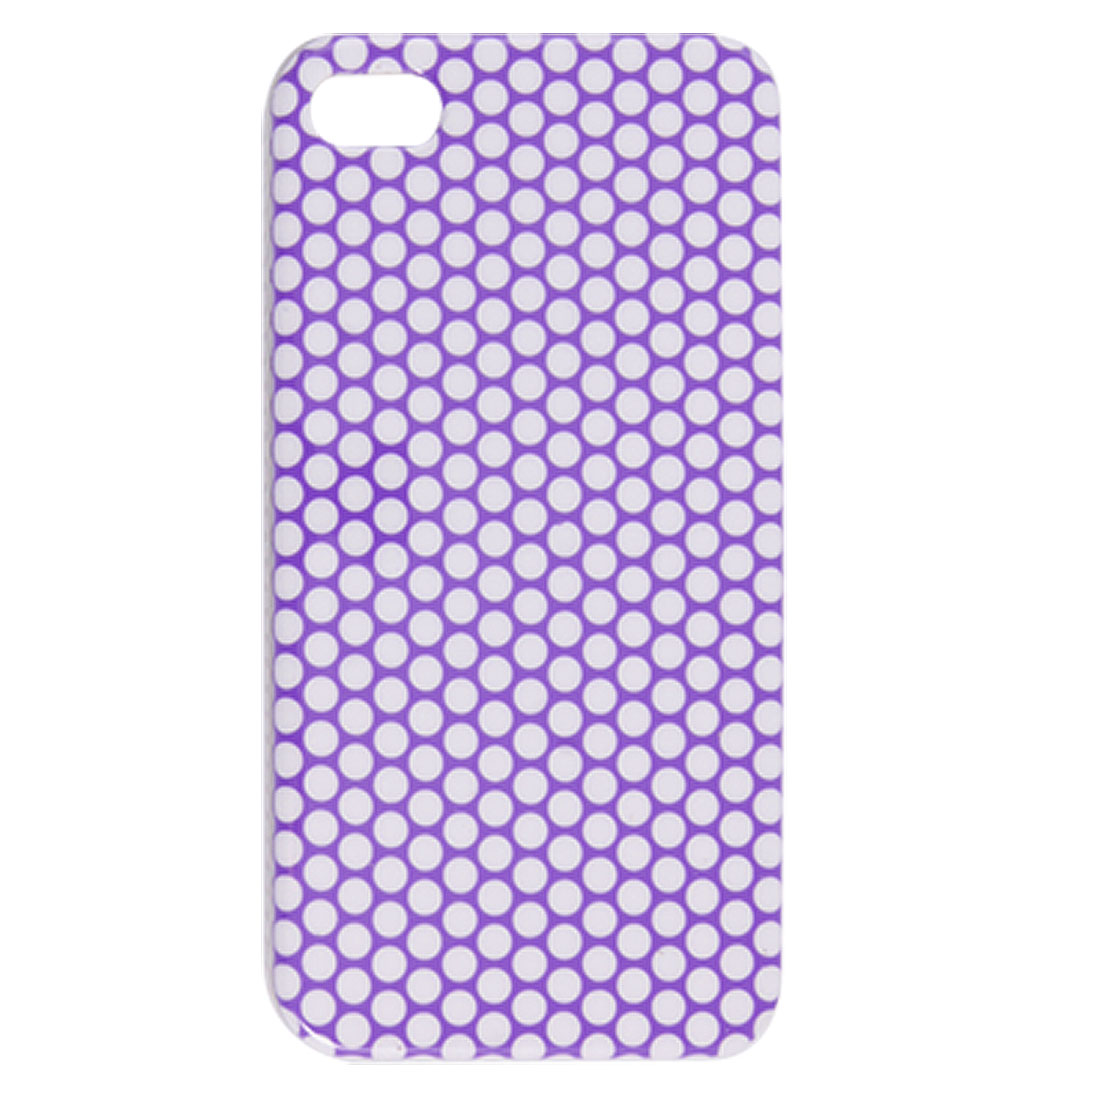 IMD Purple Dots Pattern White Hard Plastic Back Case for iPhone 4 4G 4S